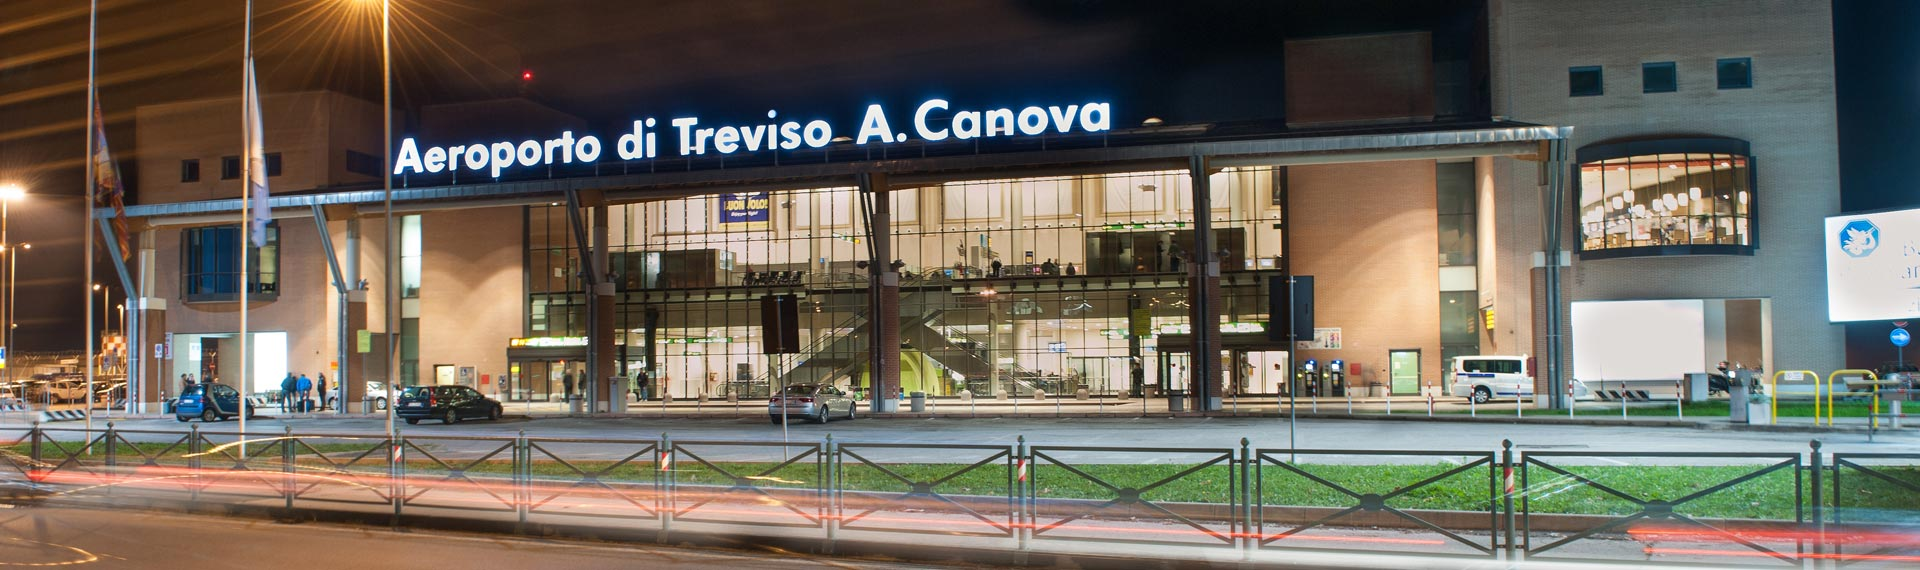 Treviso Airport by night front